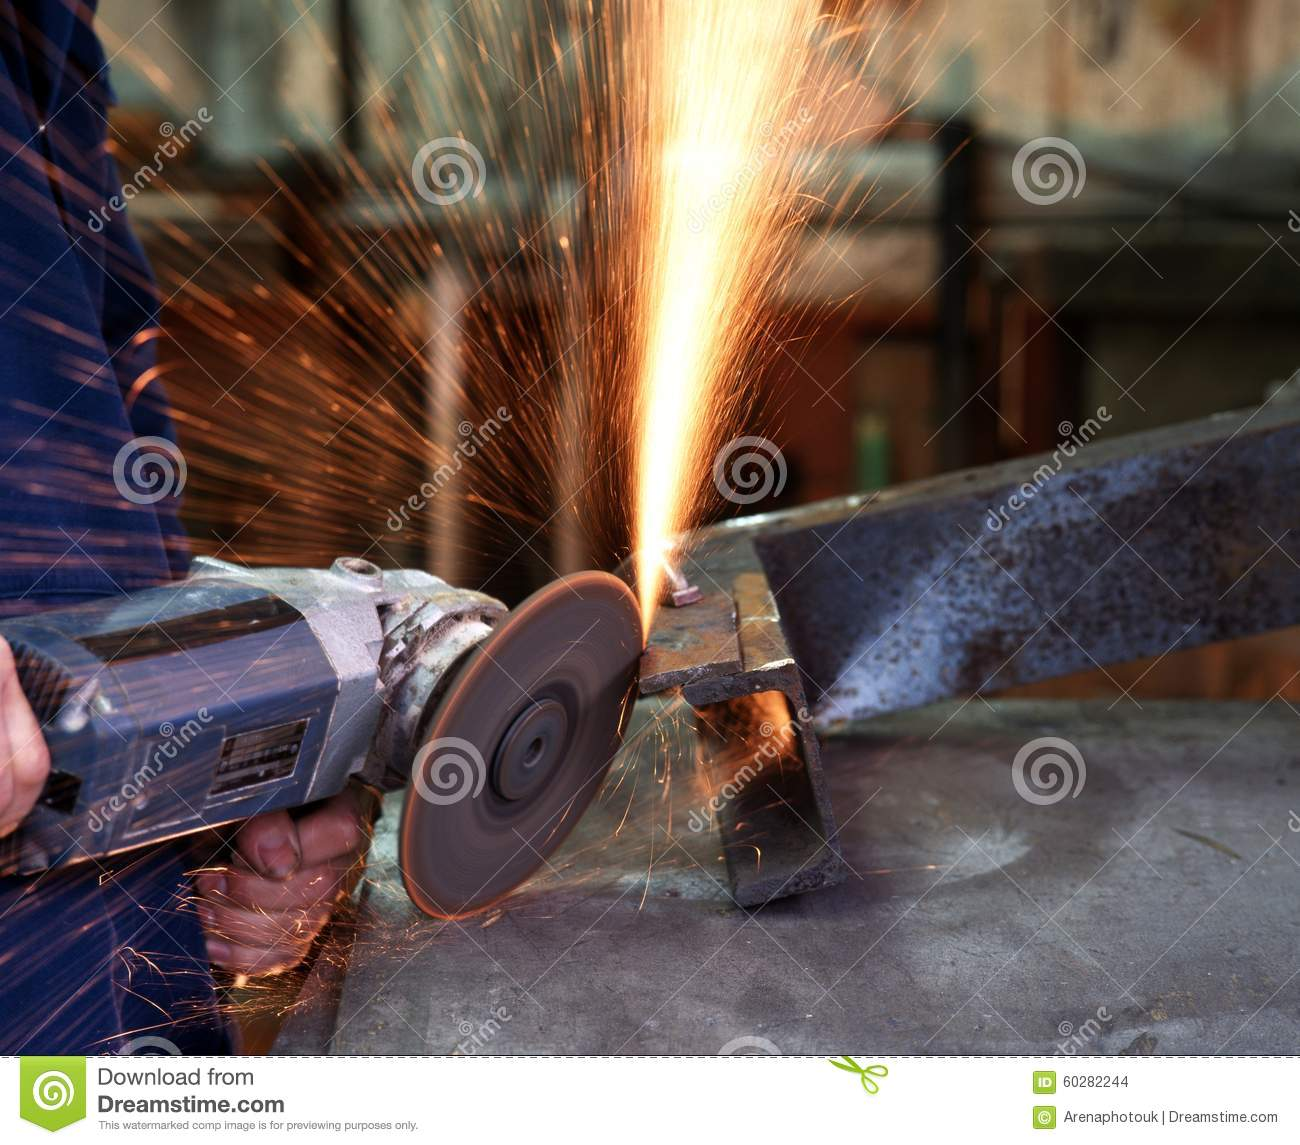 how to cut cement with an angle grinder